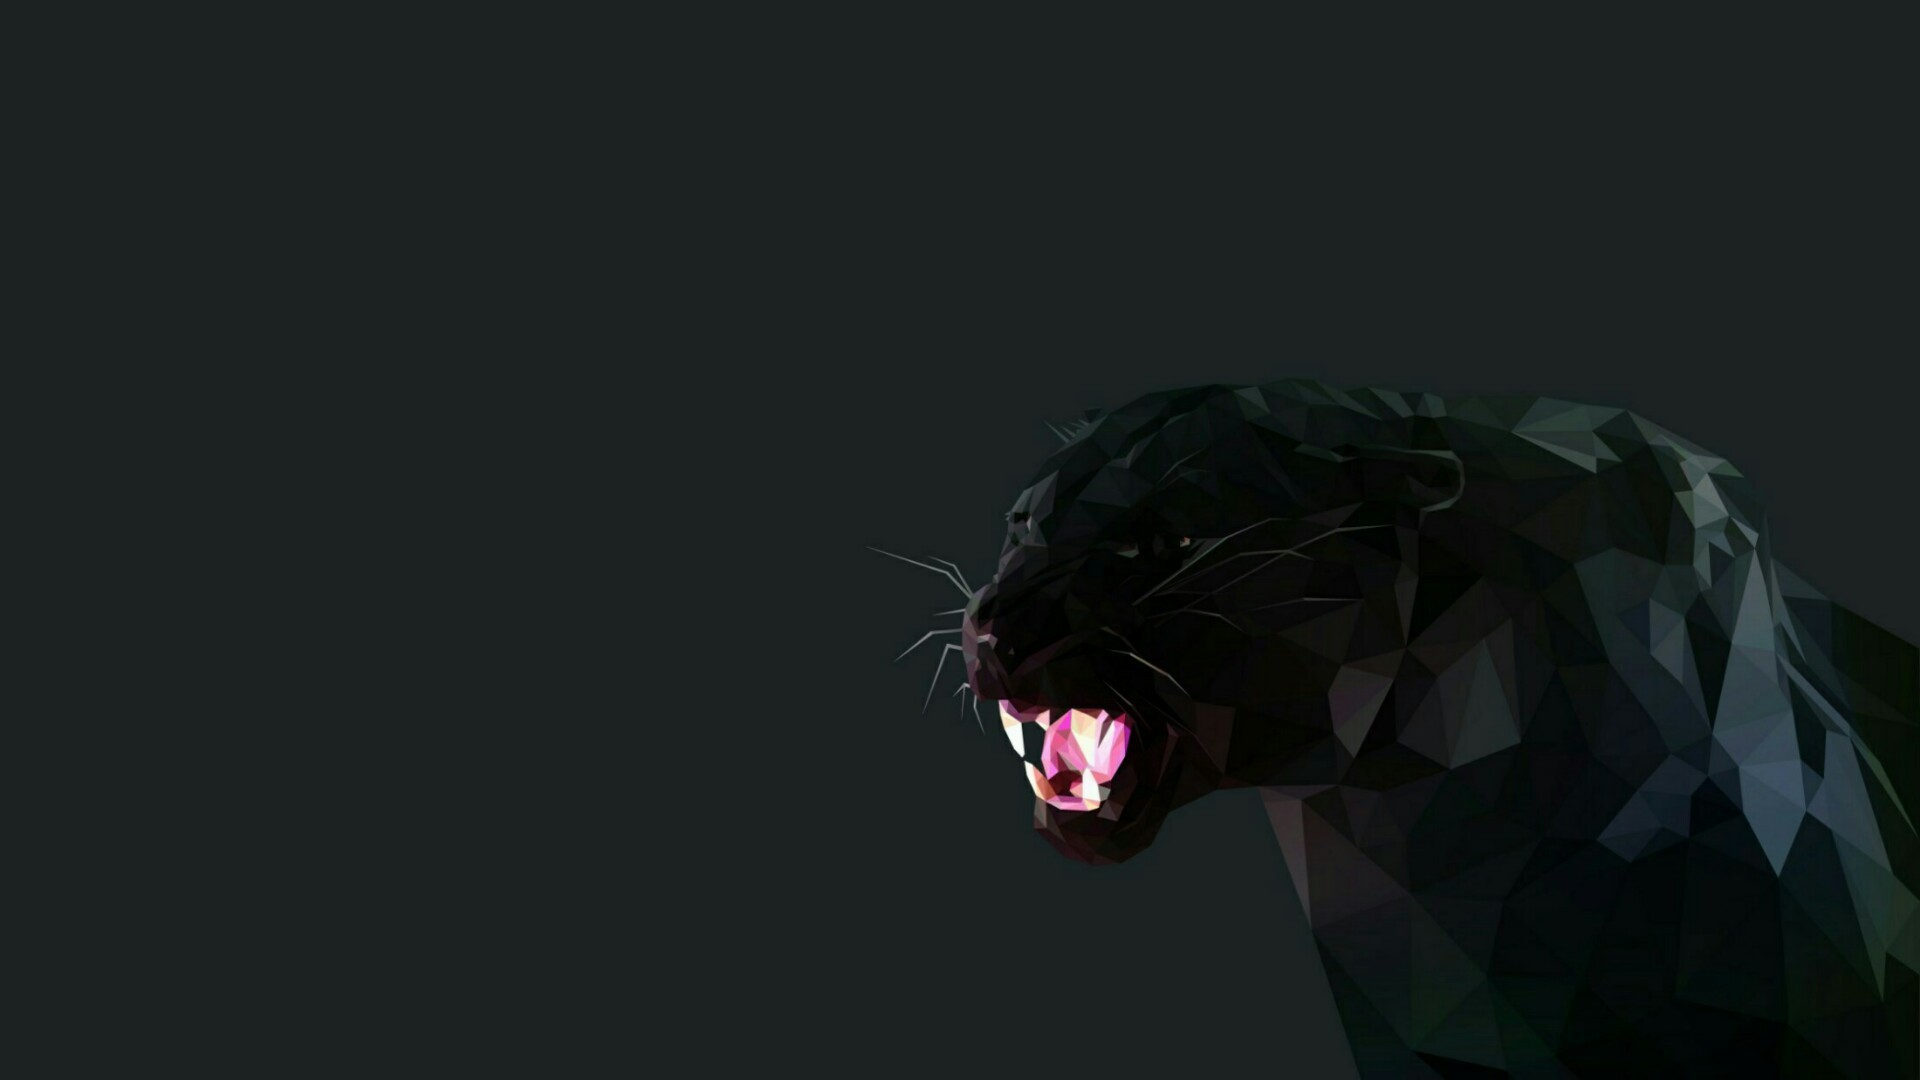 Black Panther Wallpapers Posted By Zoey Tremblay